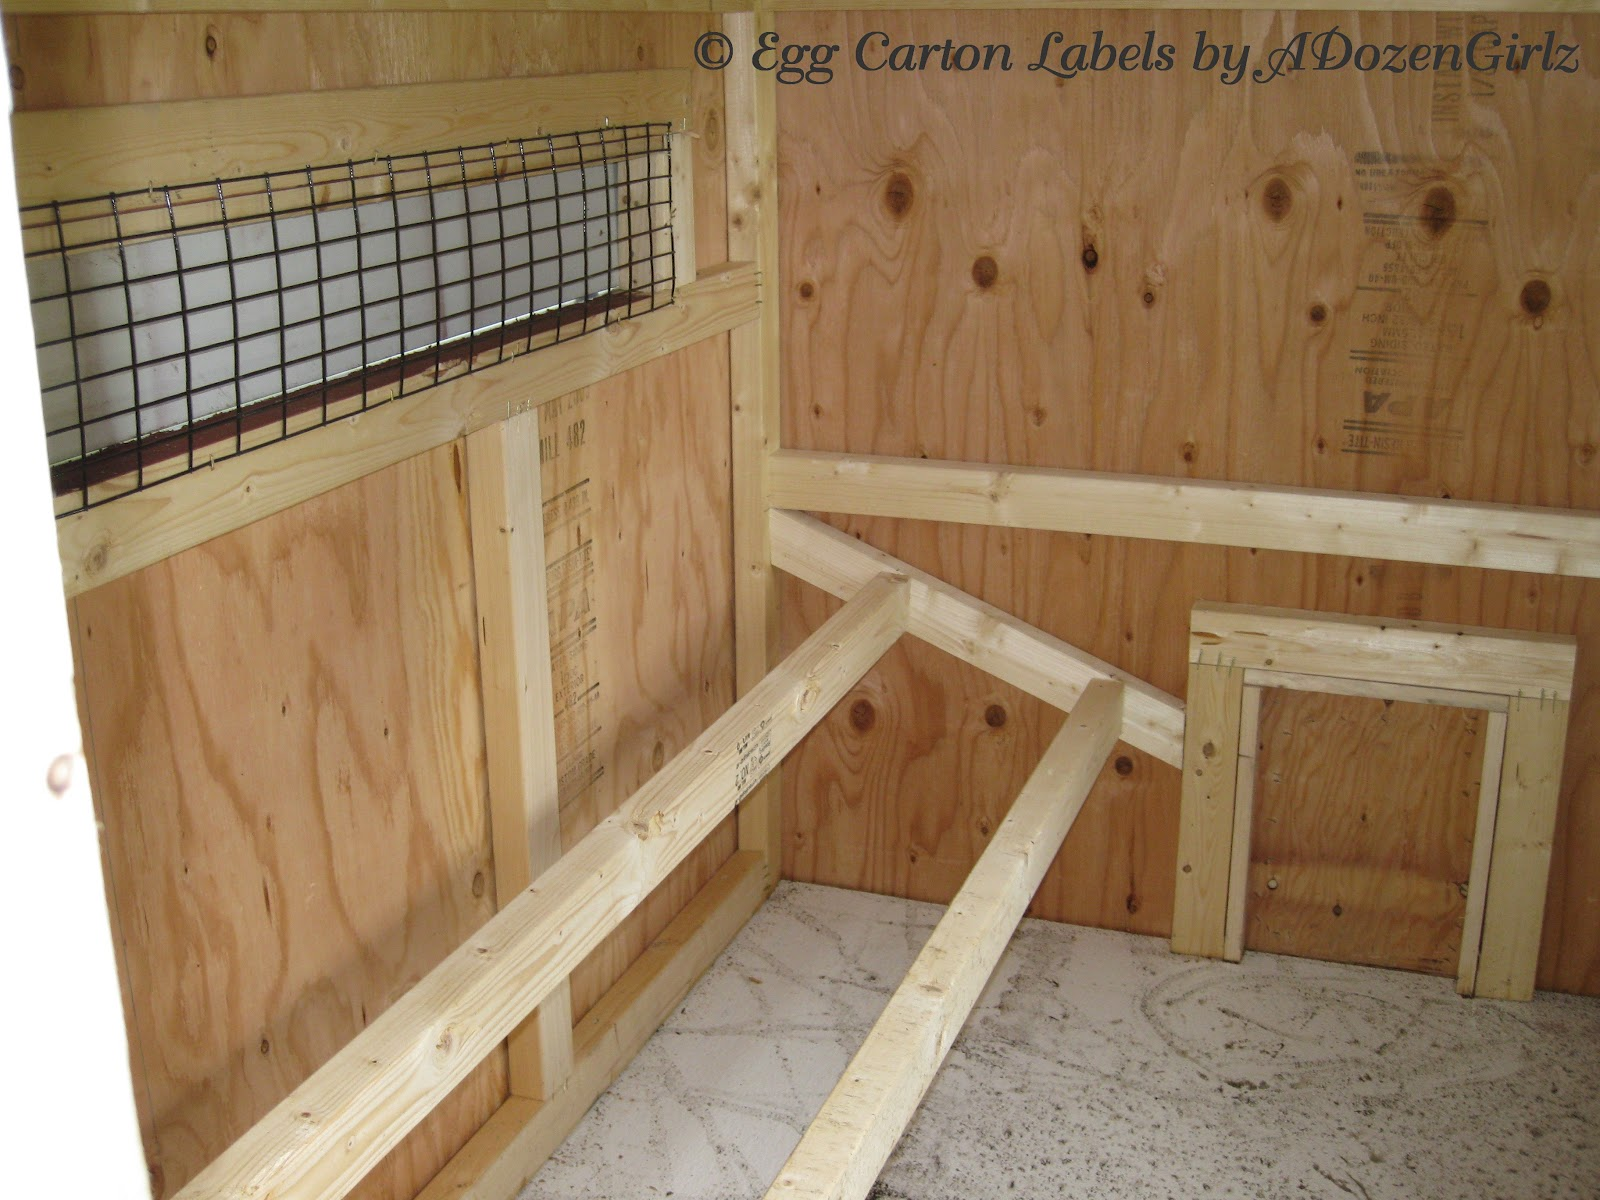 Chicken coop inside layout - photo#45